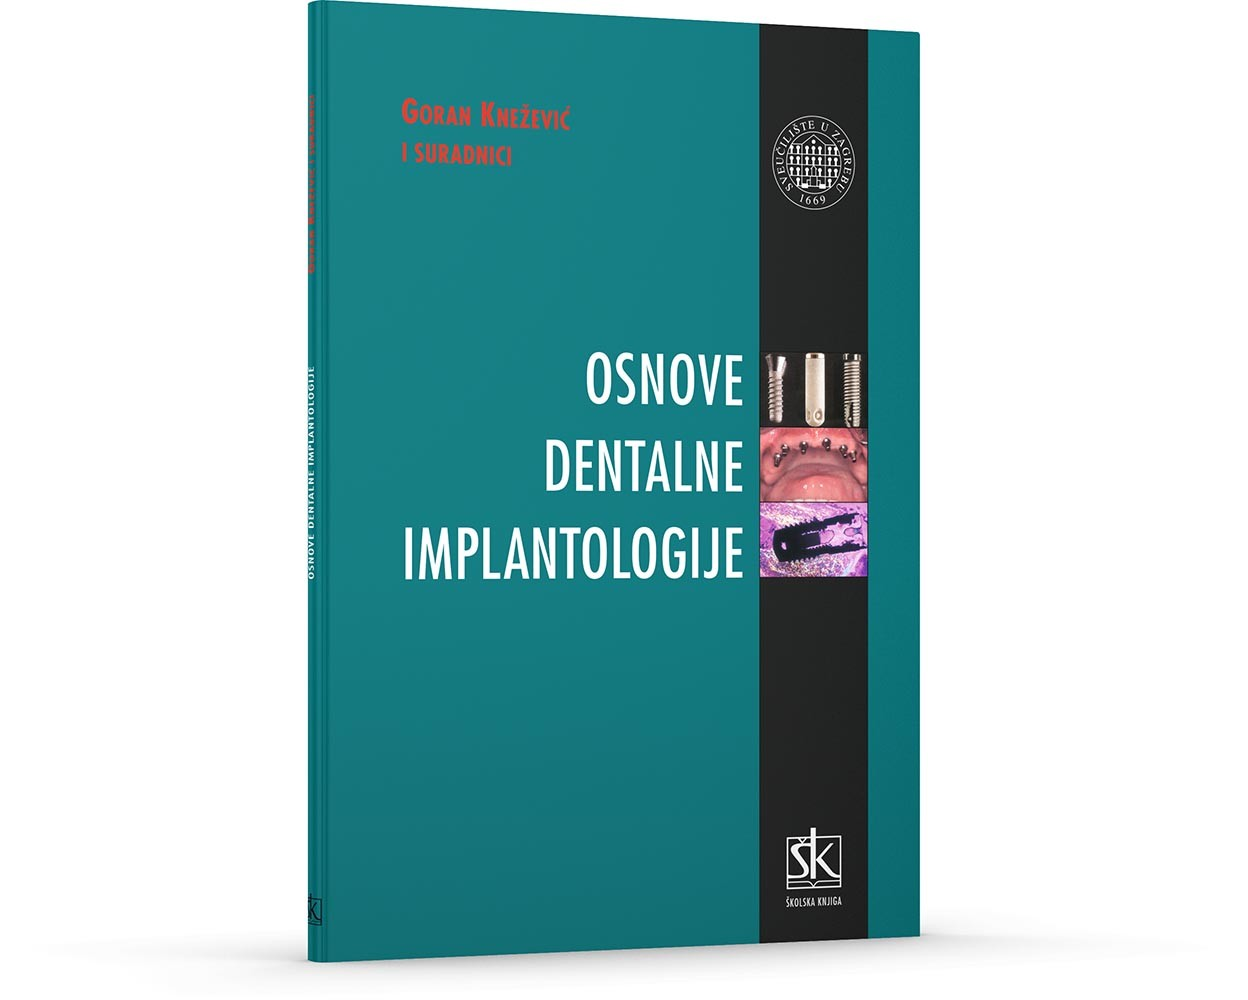 Osnove dentalne implantologije